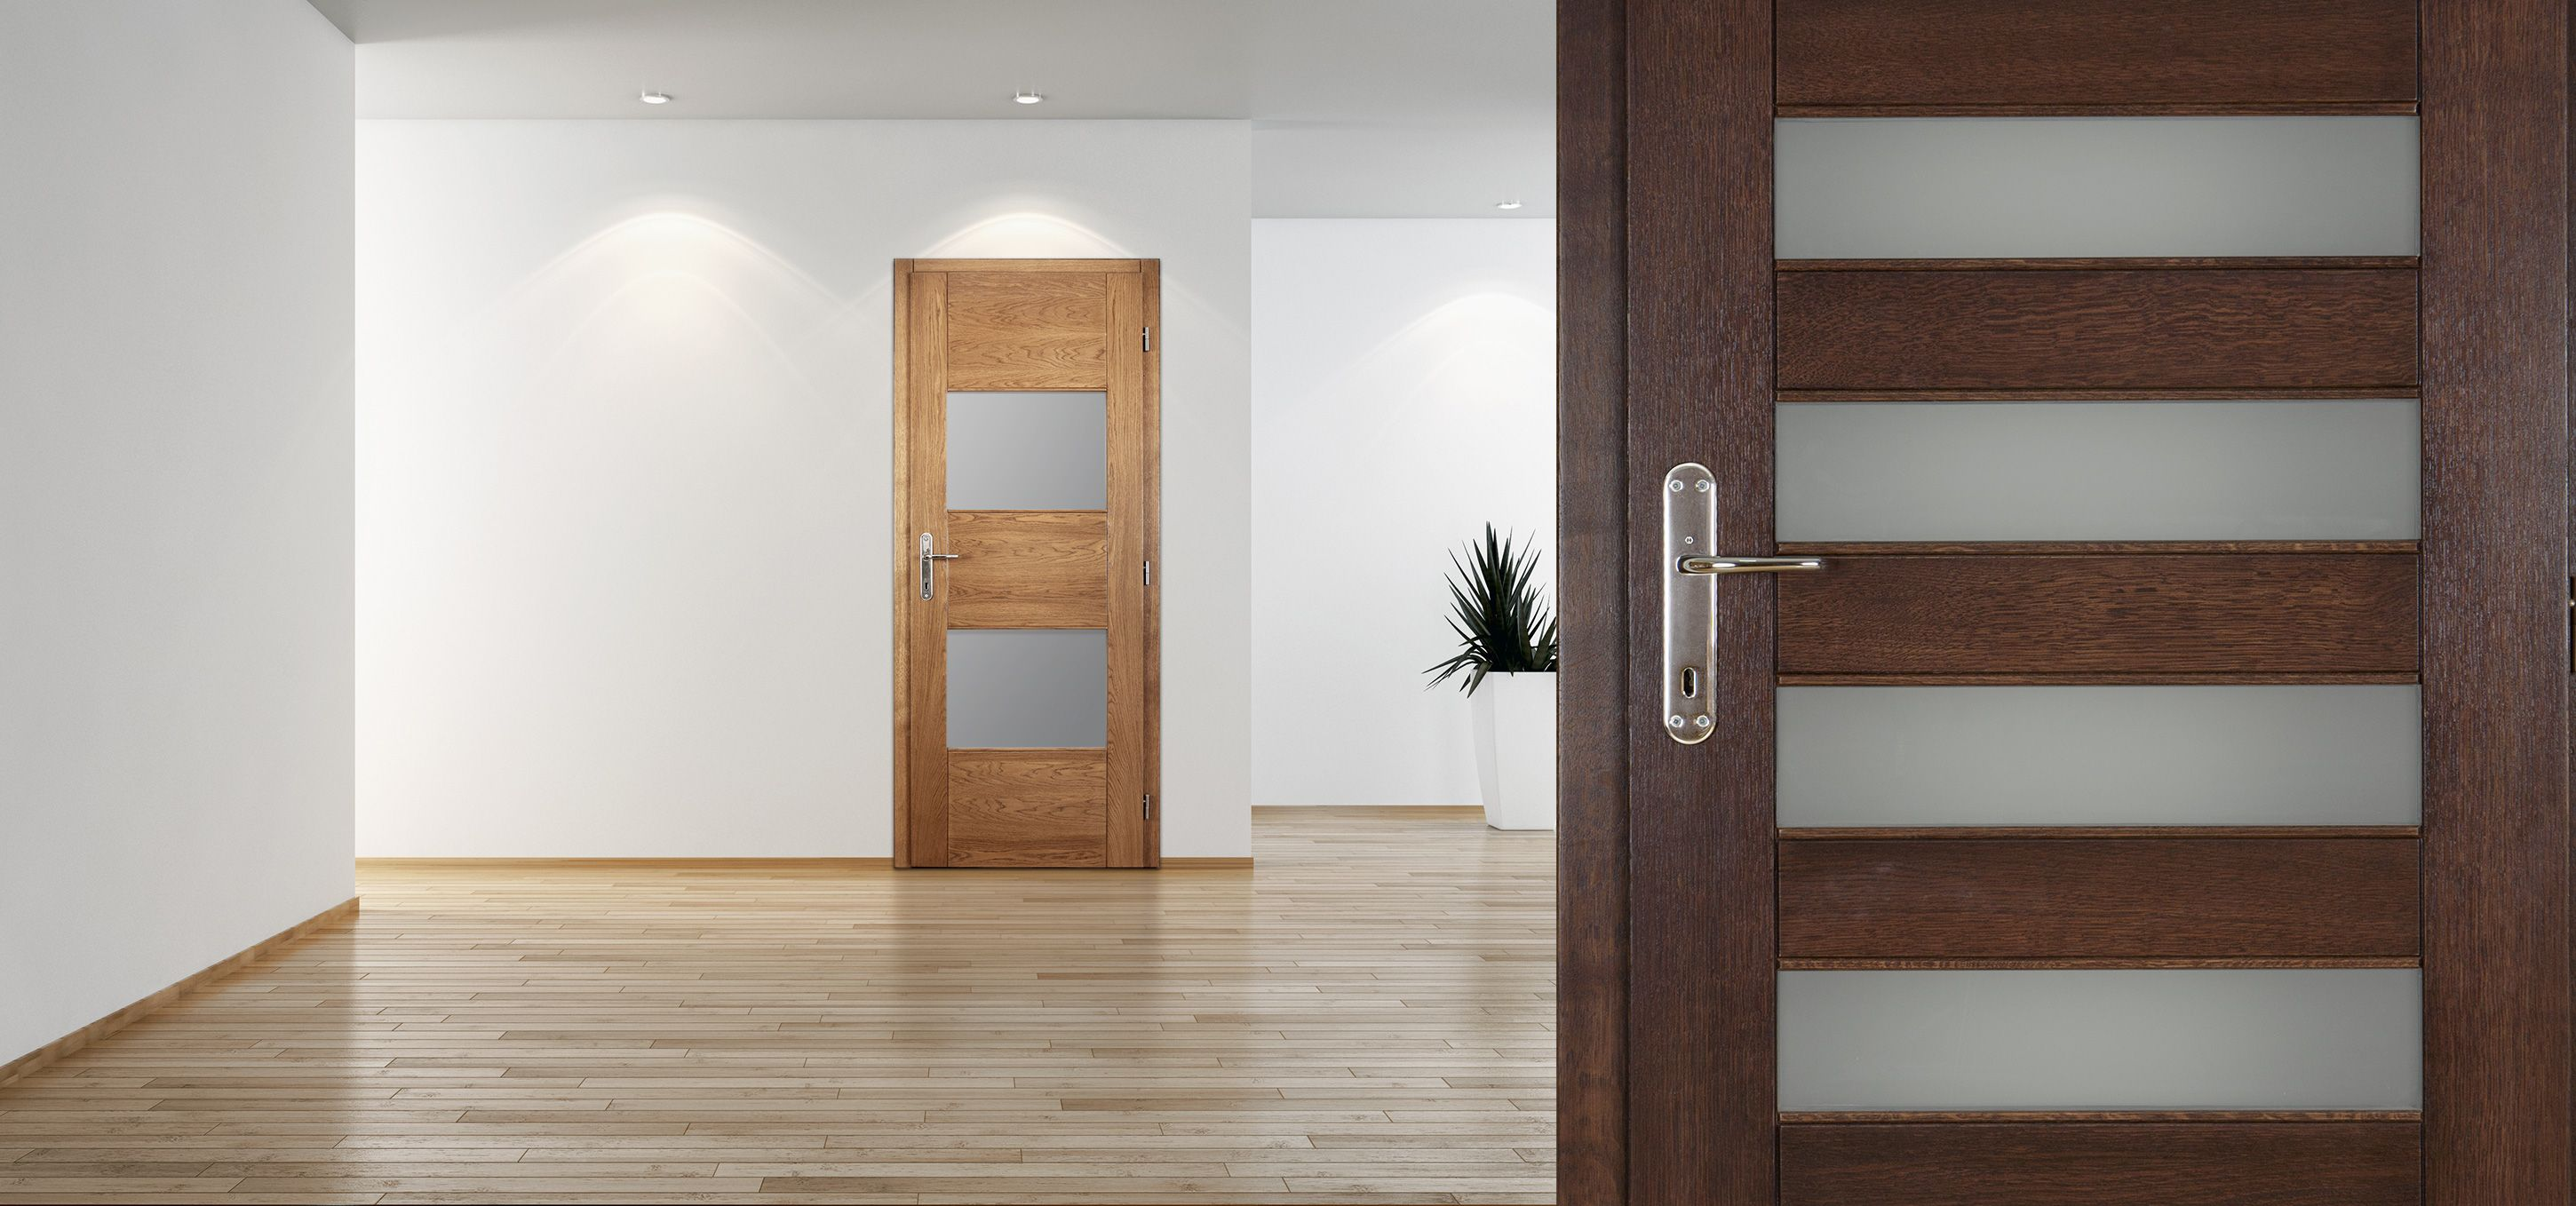 spacva solid wood interior door made of slavonian oak